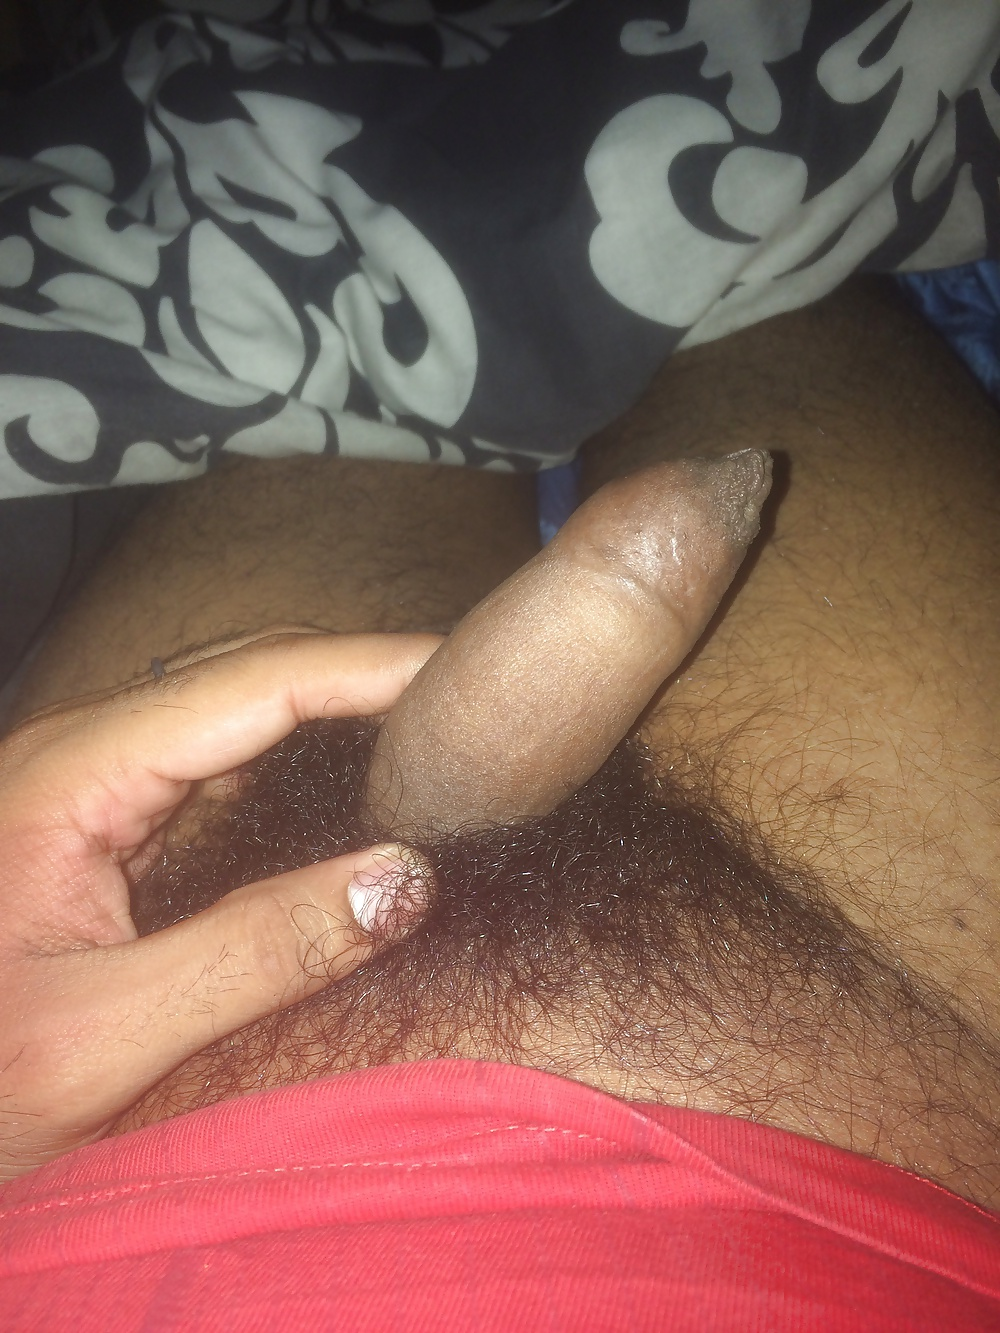 gay uncut dick